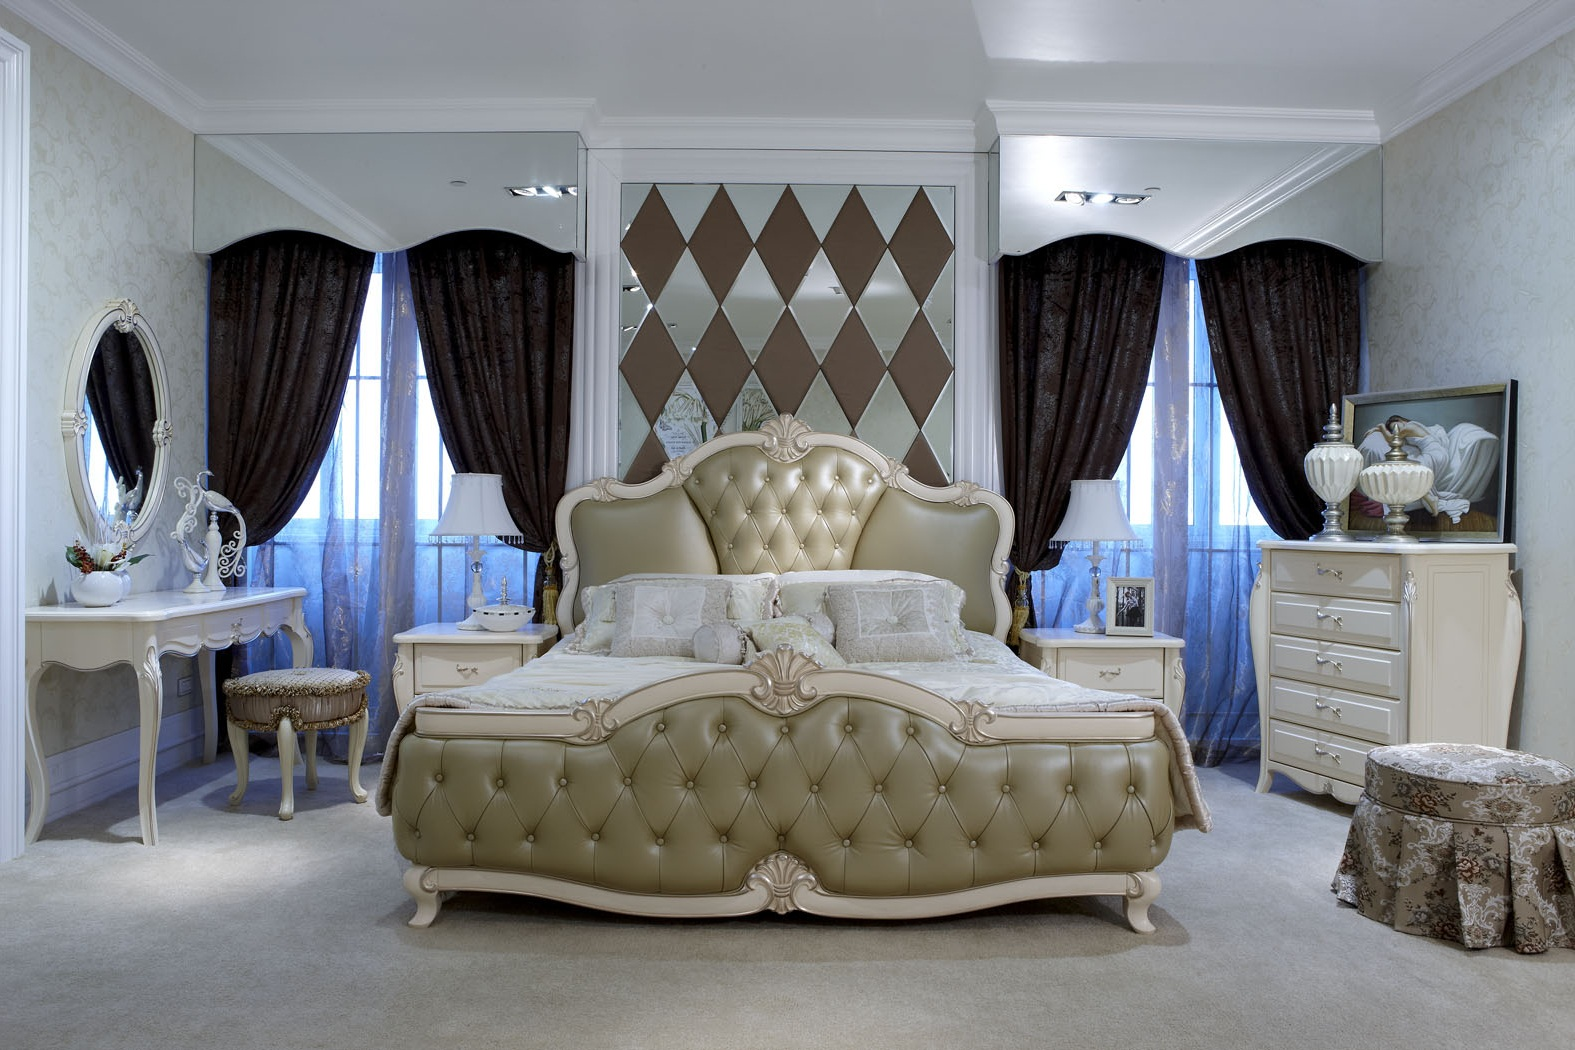 Glamorous Bedroom Furniture And Decoration (Image 4 of 9)